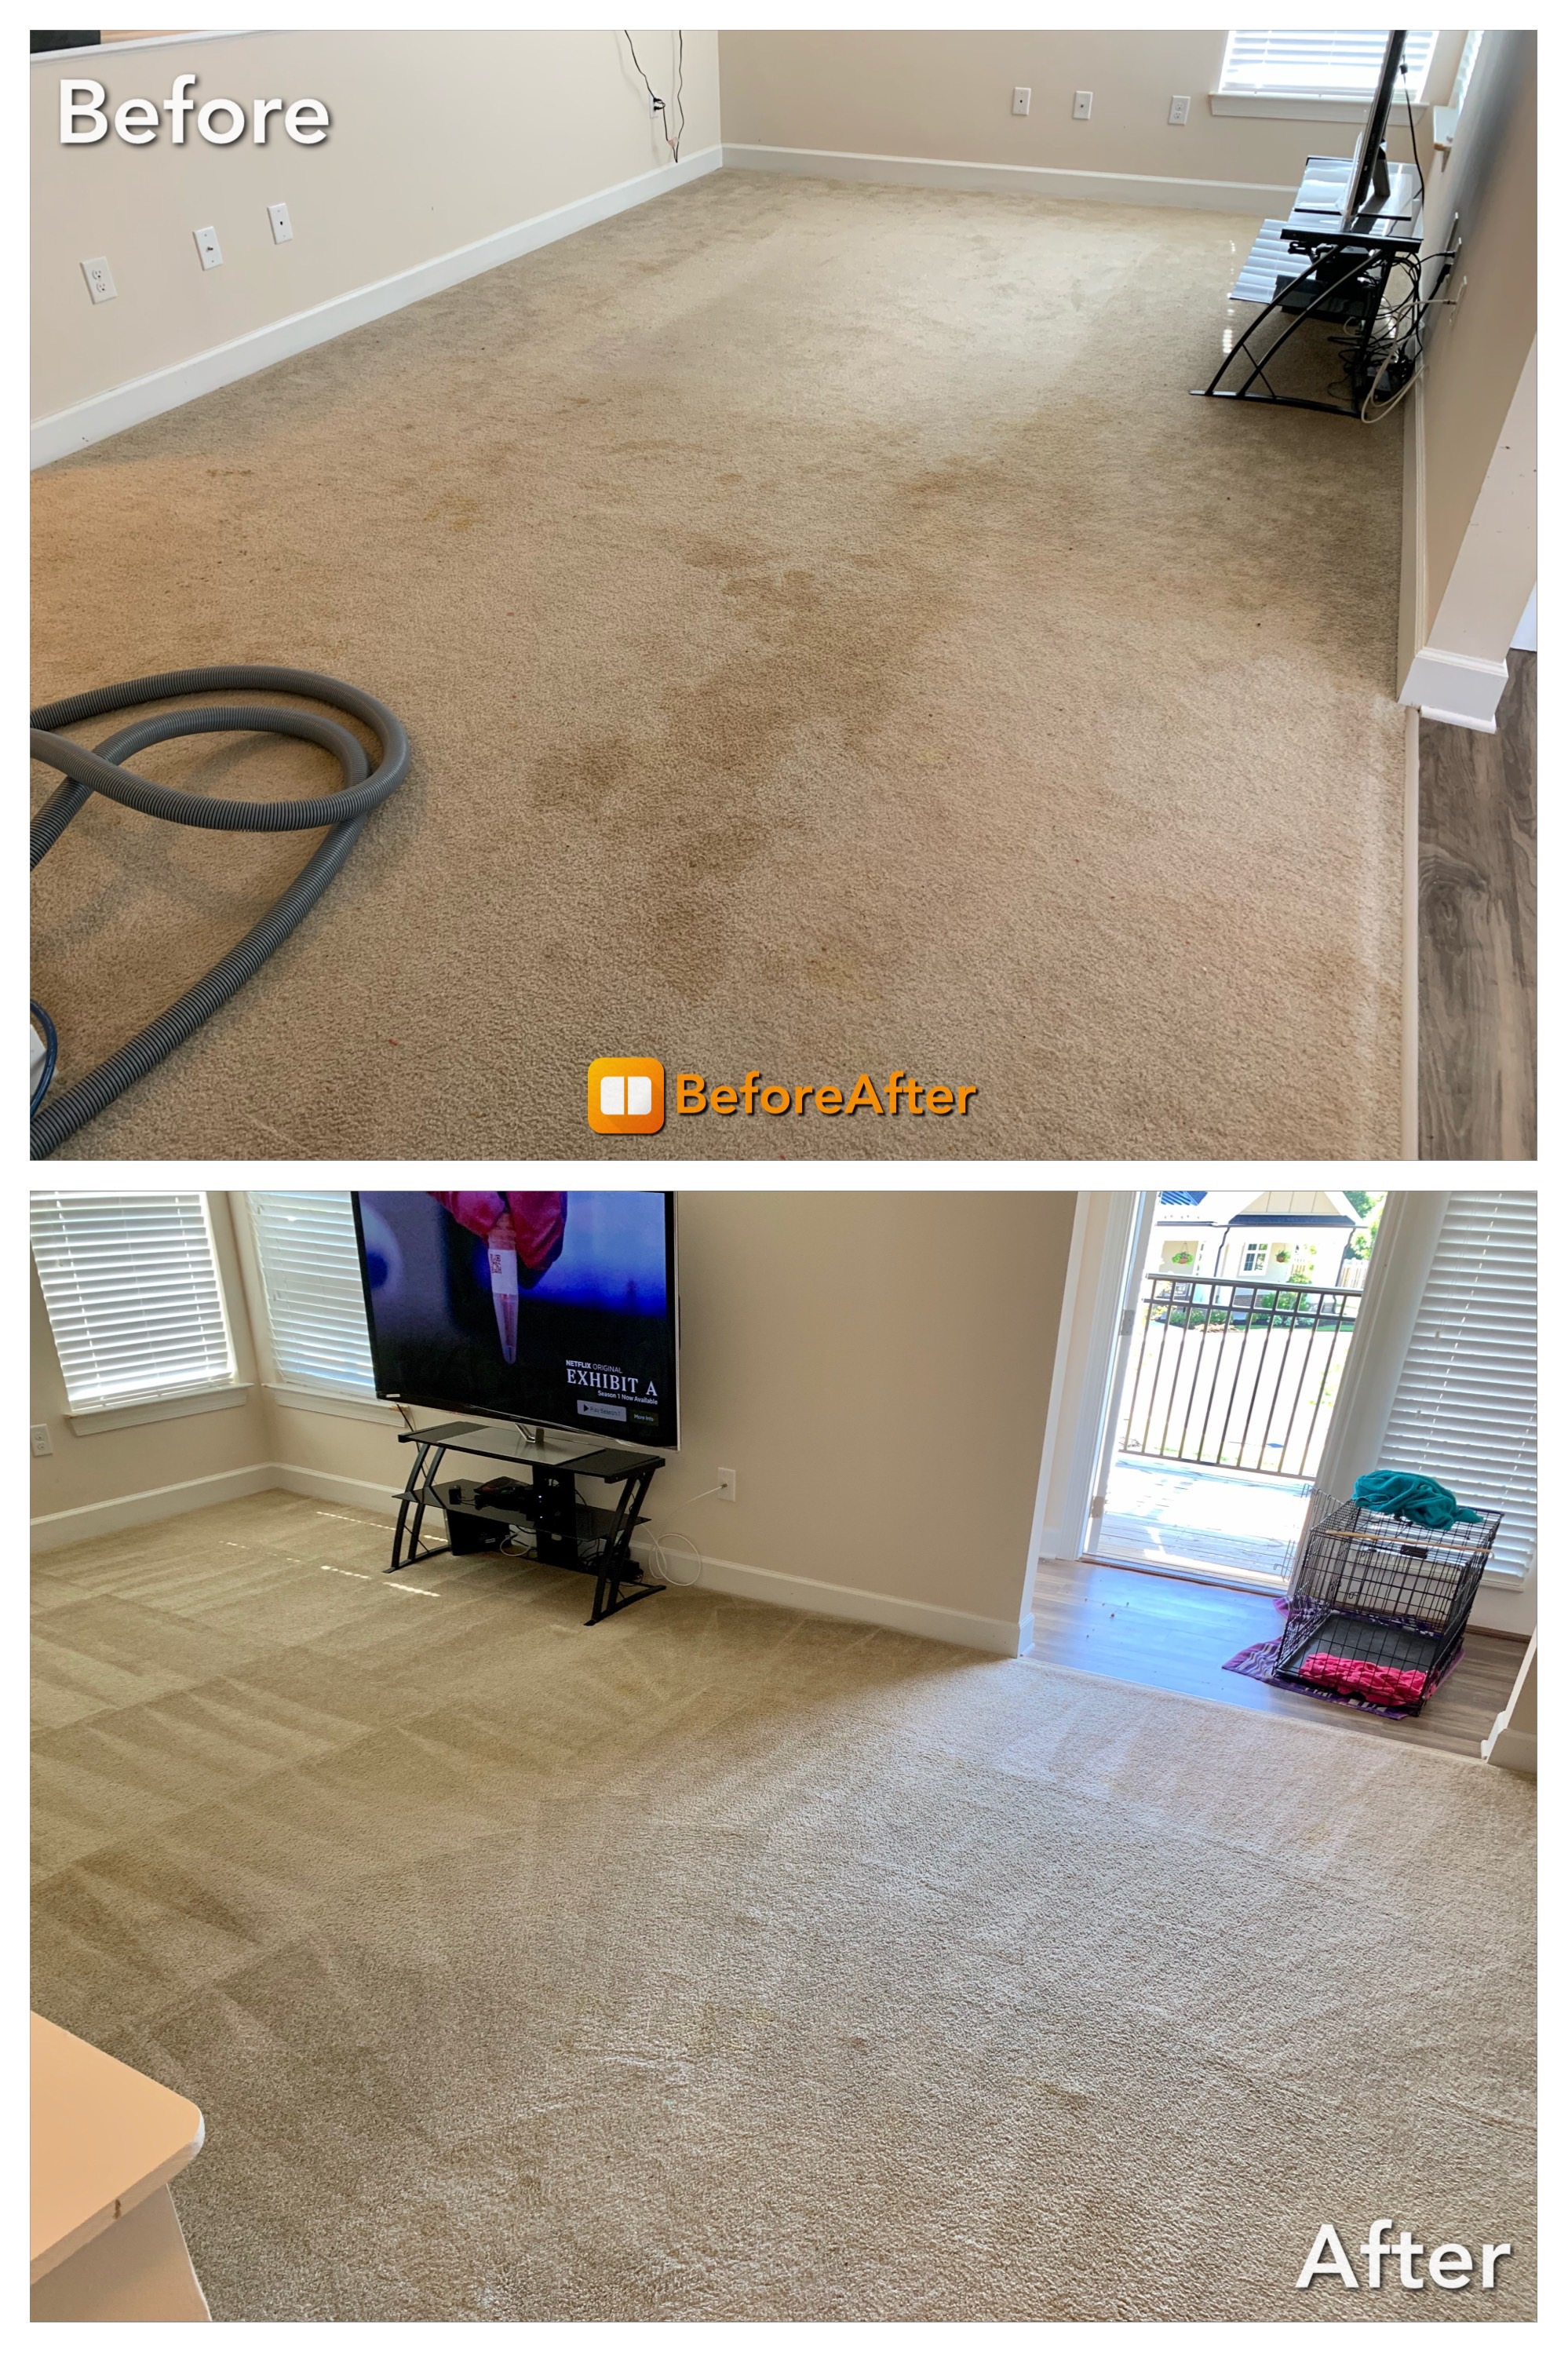 Carpet Cleaning - urine stains